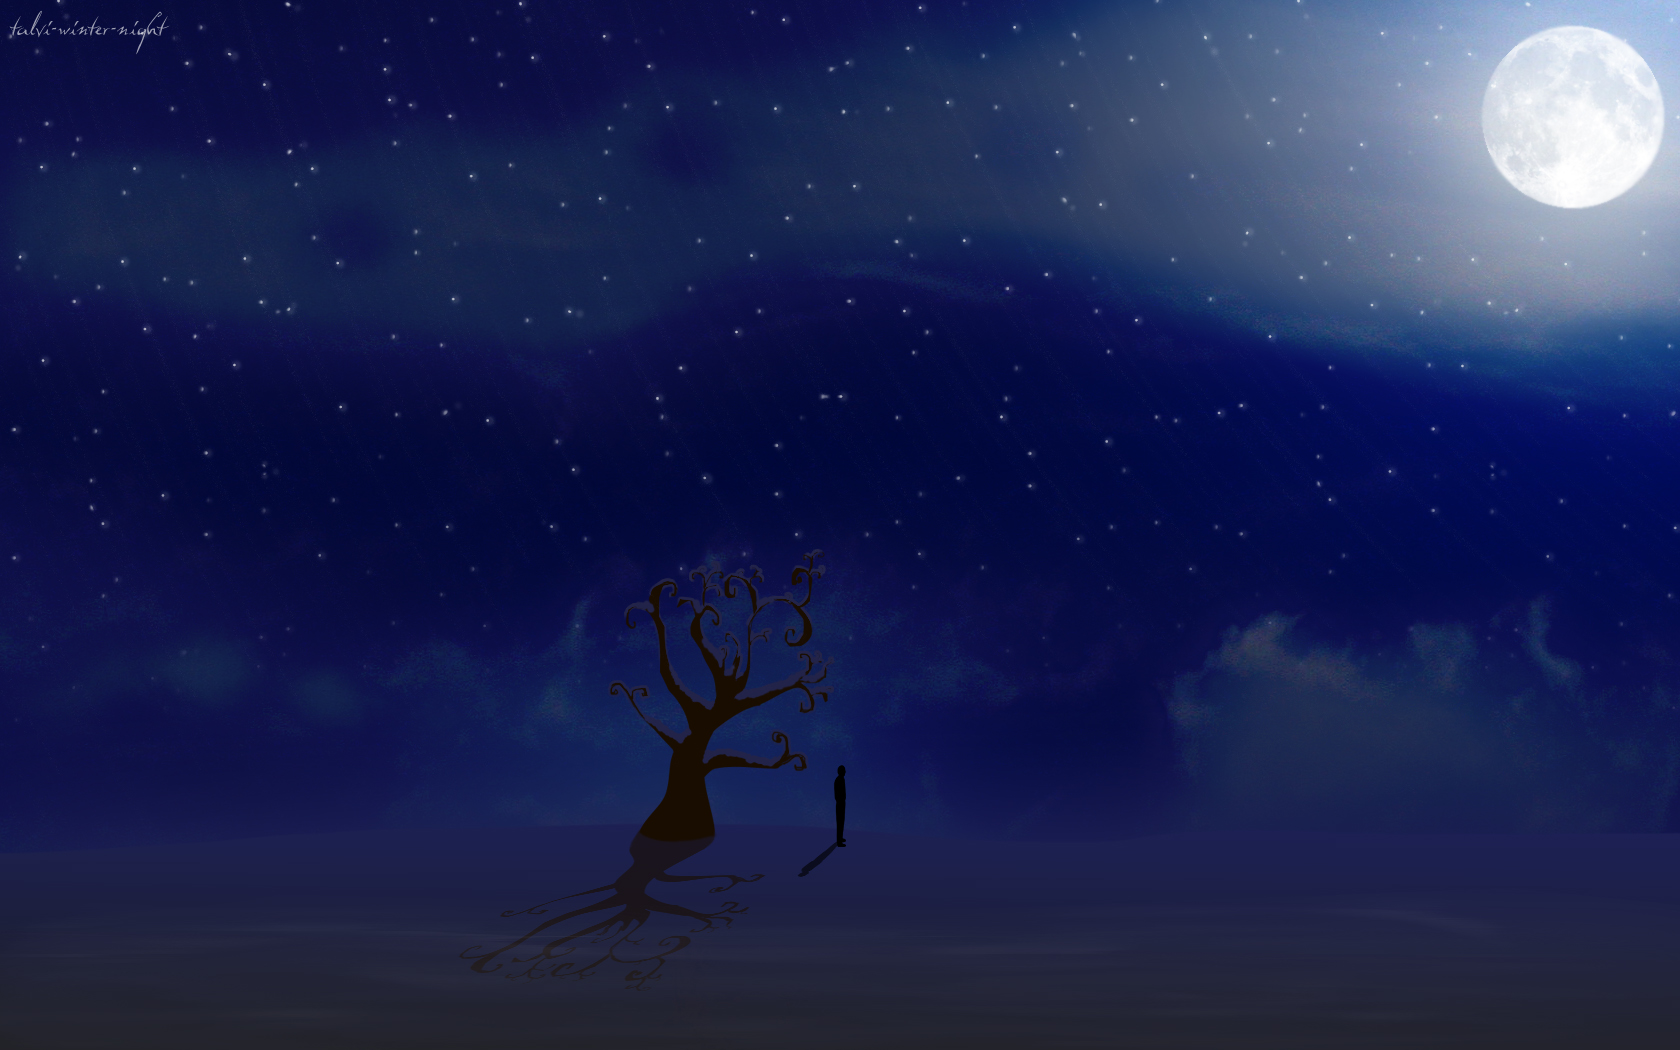 Sky Desktop Backgrounds and Wallpaper   talvi winter night Widescreen 1680x1050